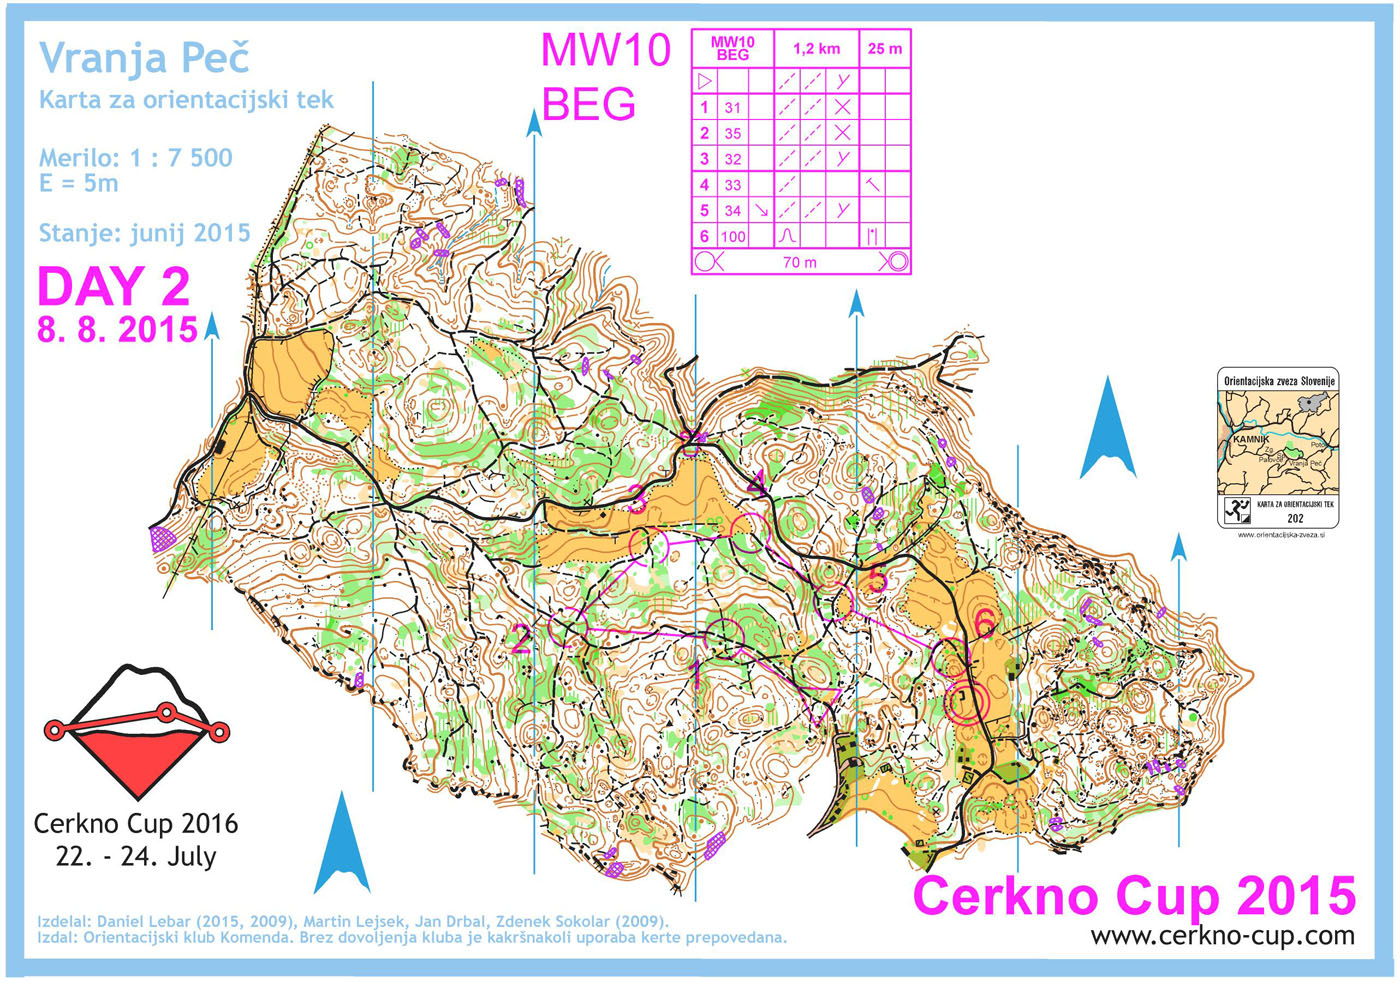 Cerkno Cup - 2015 - DAY 2 - MW10, BEG (08. 08. 2015)